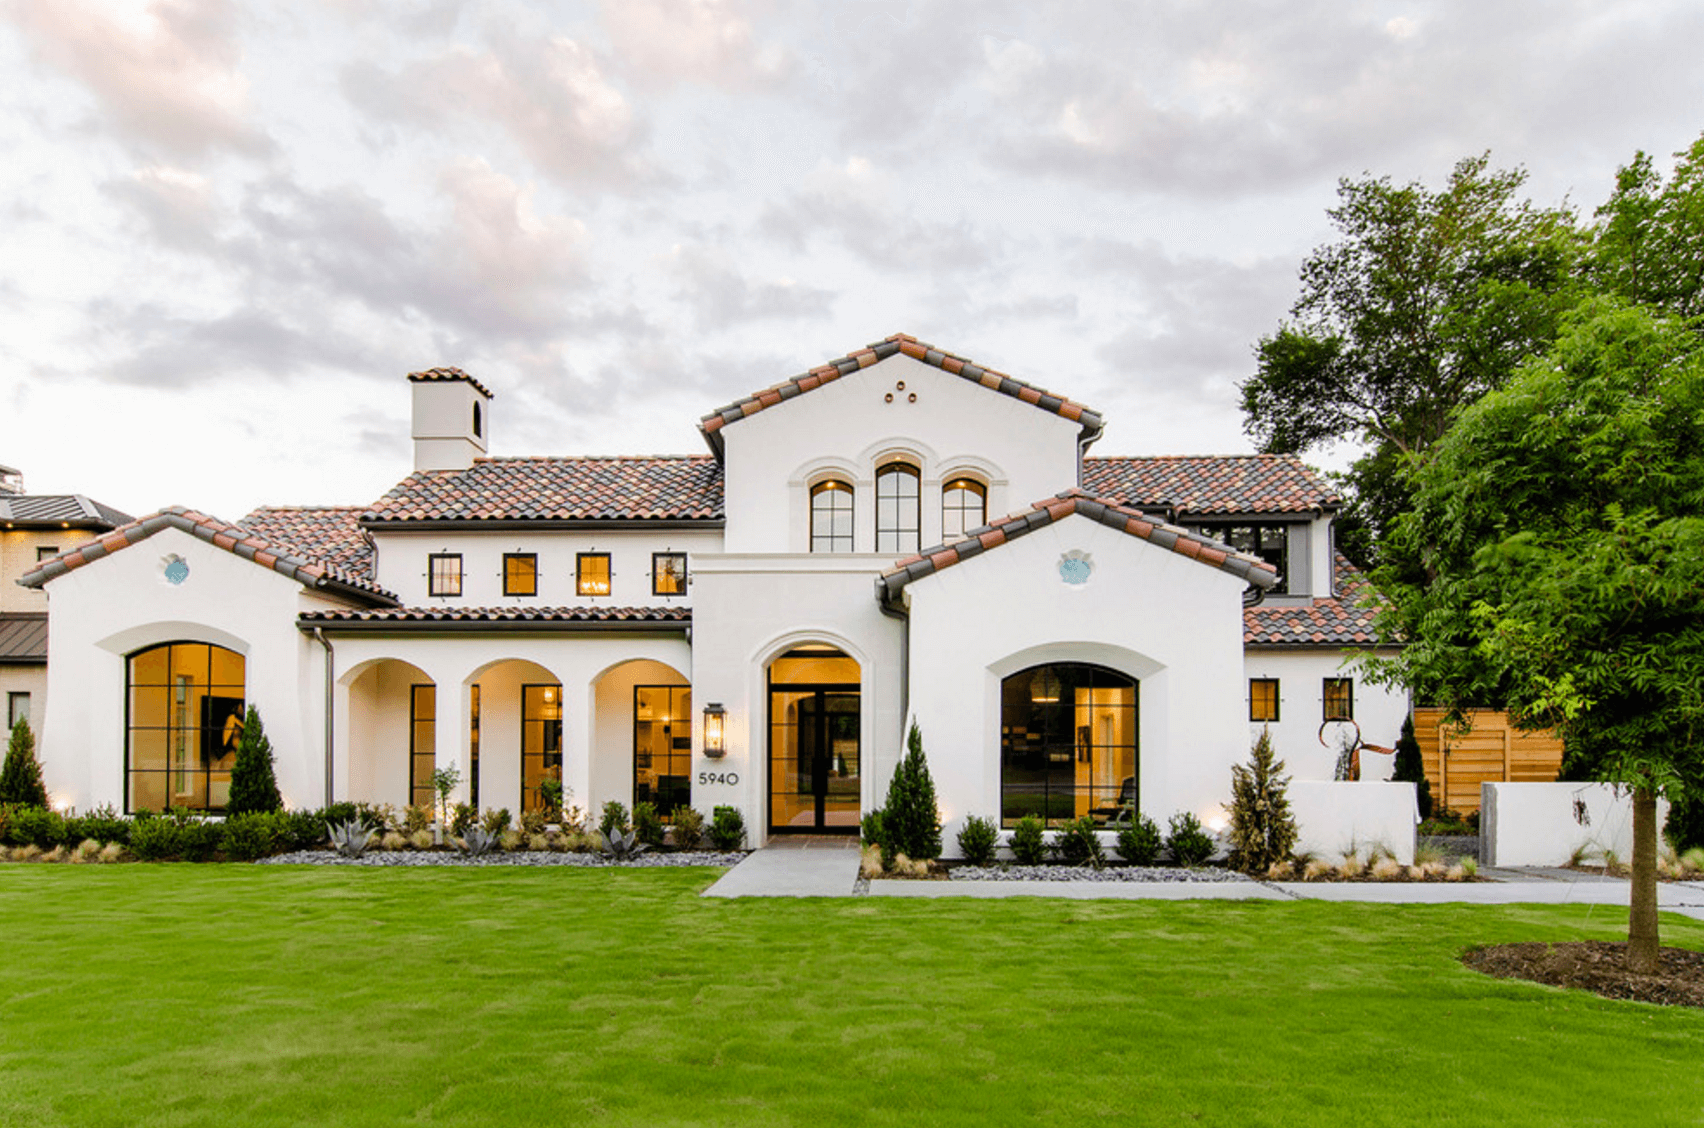 10 White Exterior Ideas For A Bright Modern Home House Designs Exterior Spanish Style Homes Mediterranean House Designs